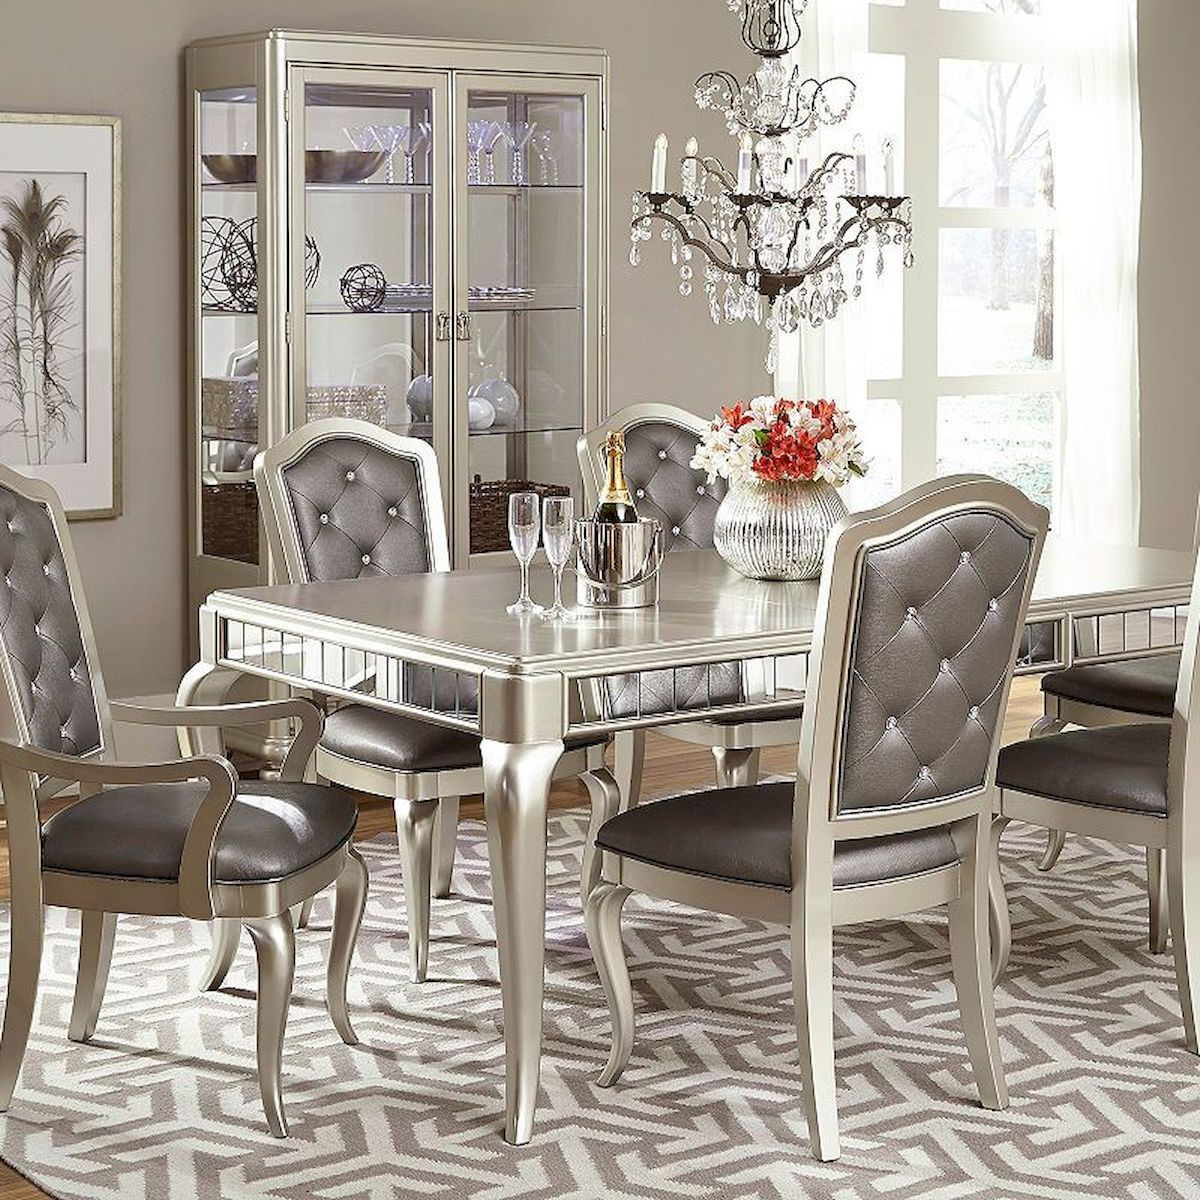 Charming And Cheap Decor Ideas Formal Dining Room: 160+ Awesome Formal Design Ideas For Your Dining Room